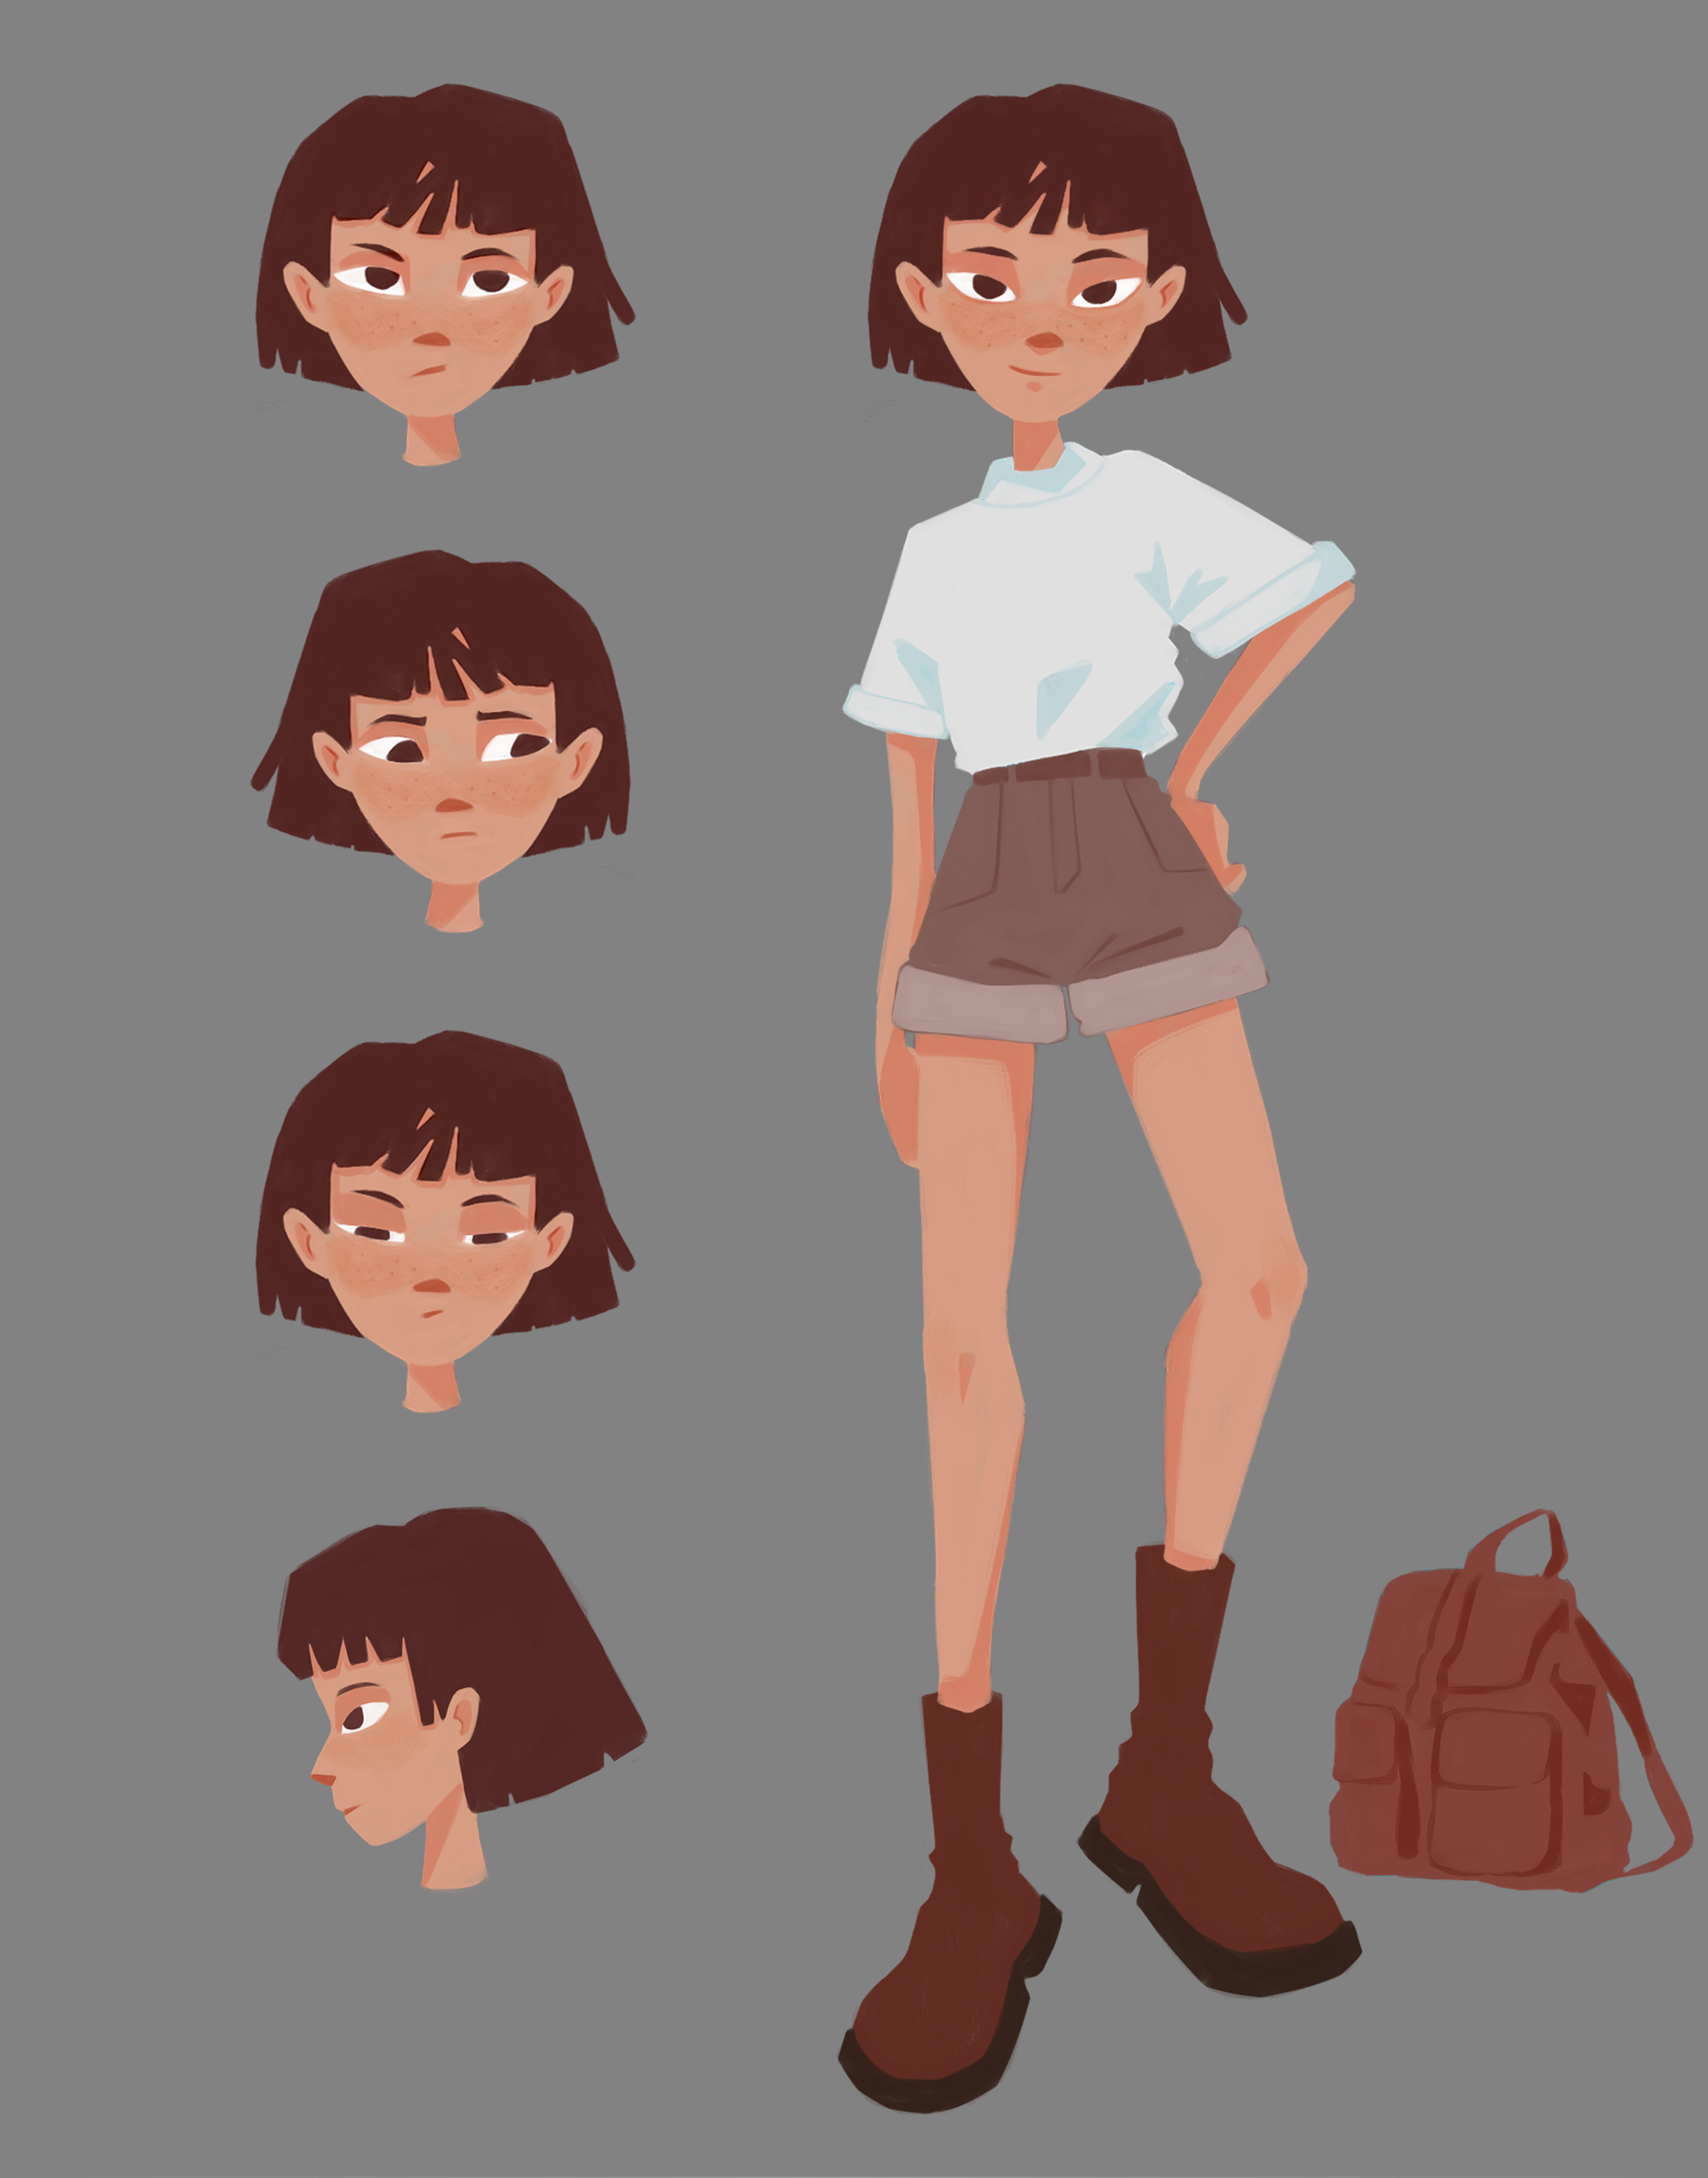 Character Design for an Animated Web Series